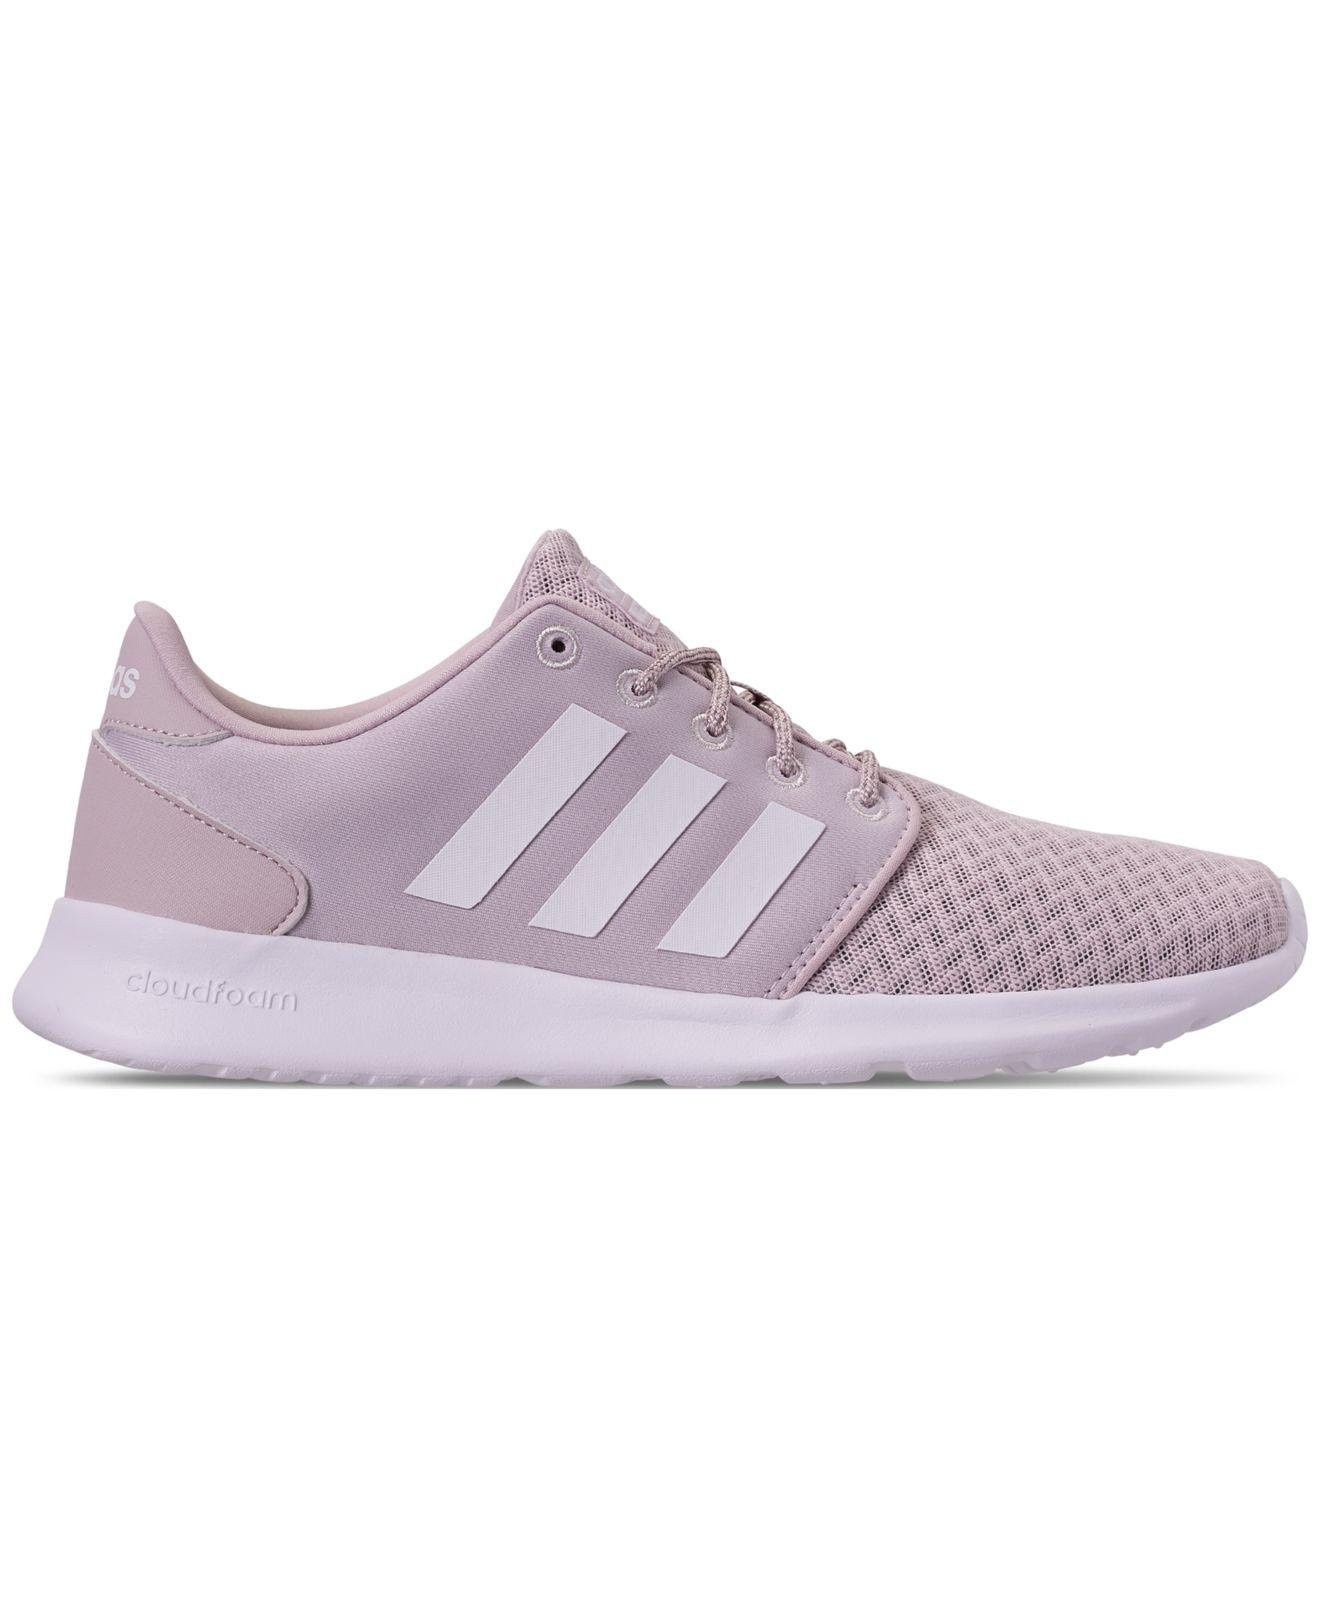 a6bd34c3d8fd73 Lyst - adidas Cloudfoam Qt Racer Casual Sneakers From Finish Line in Purple